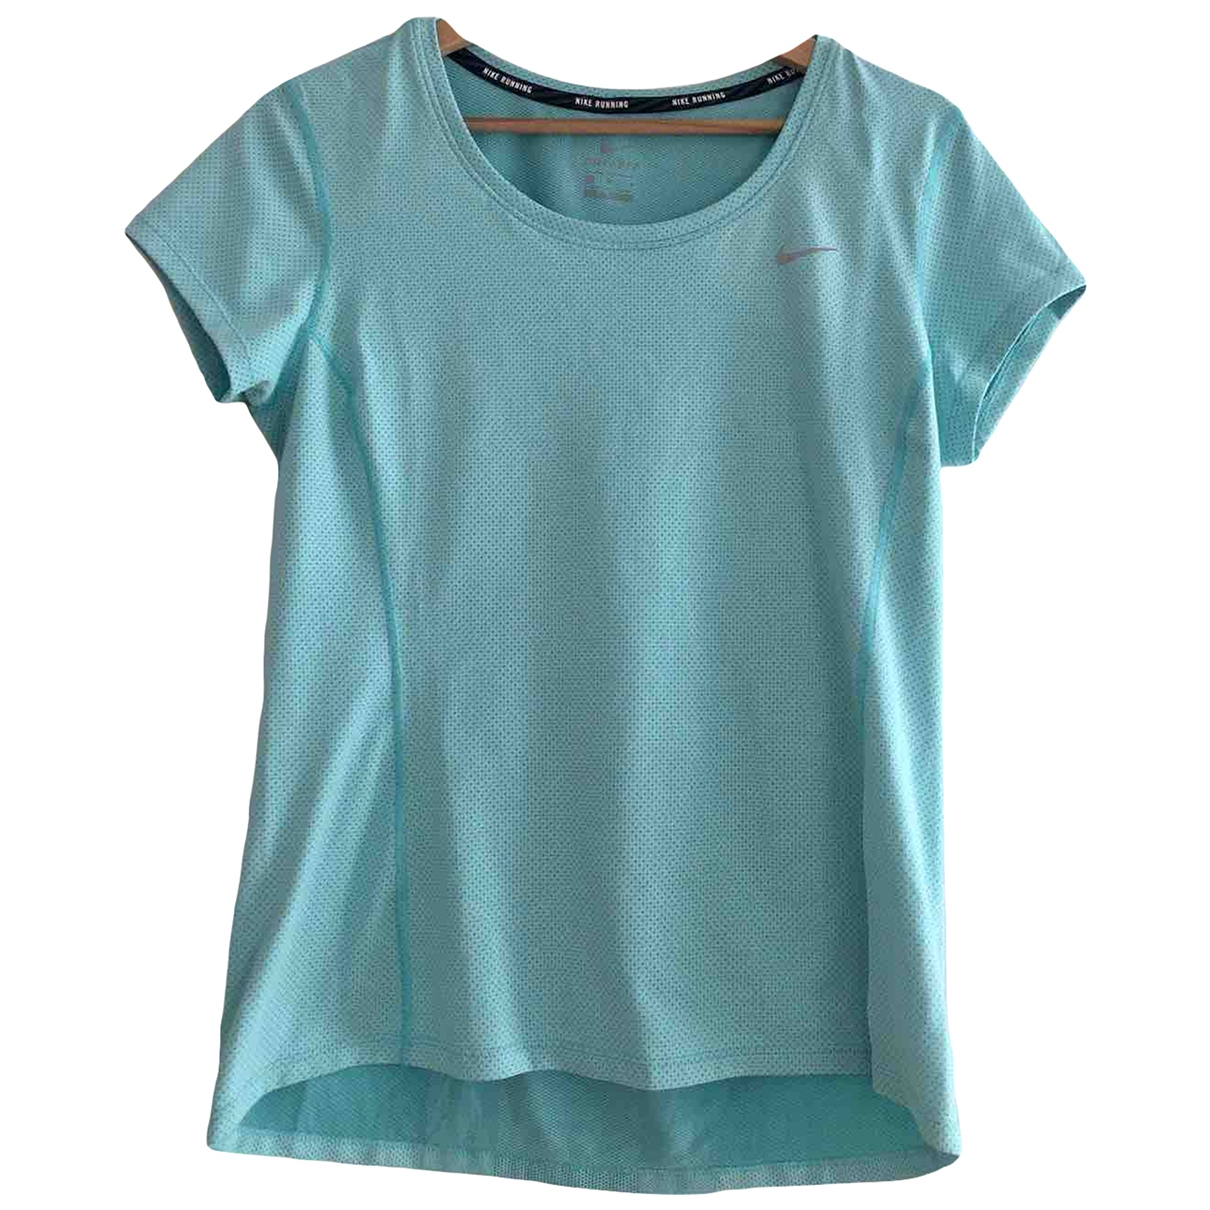 Nike \N Turquoise  top for Women M International